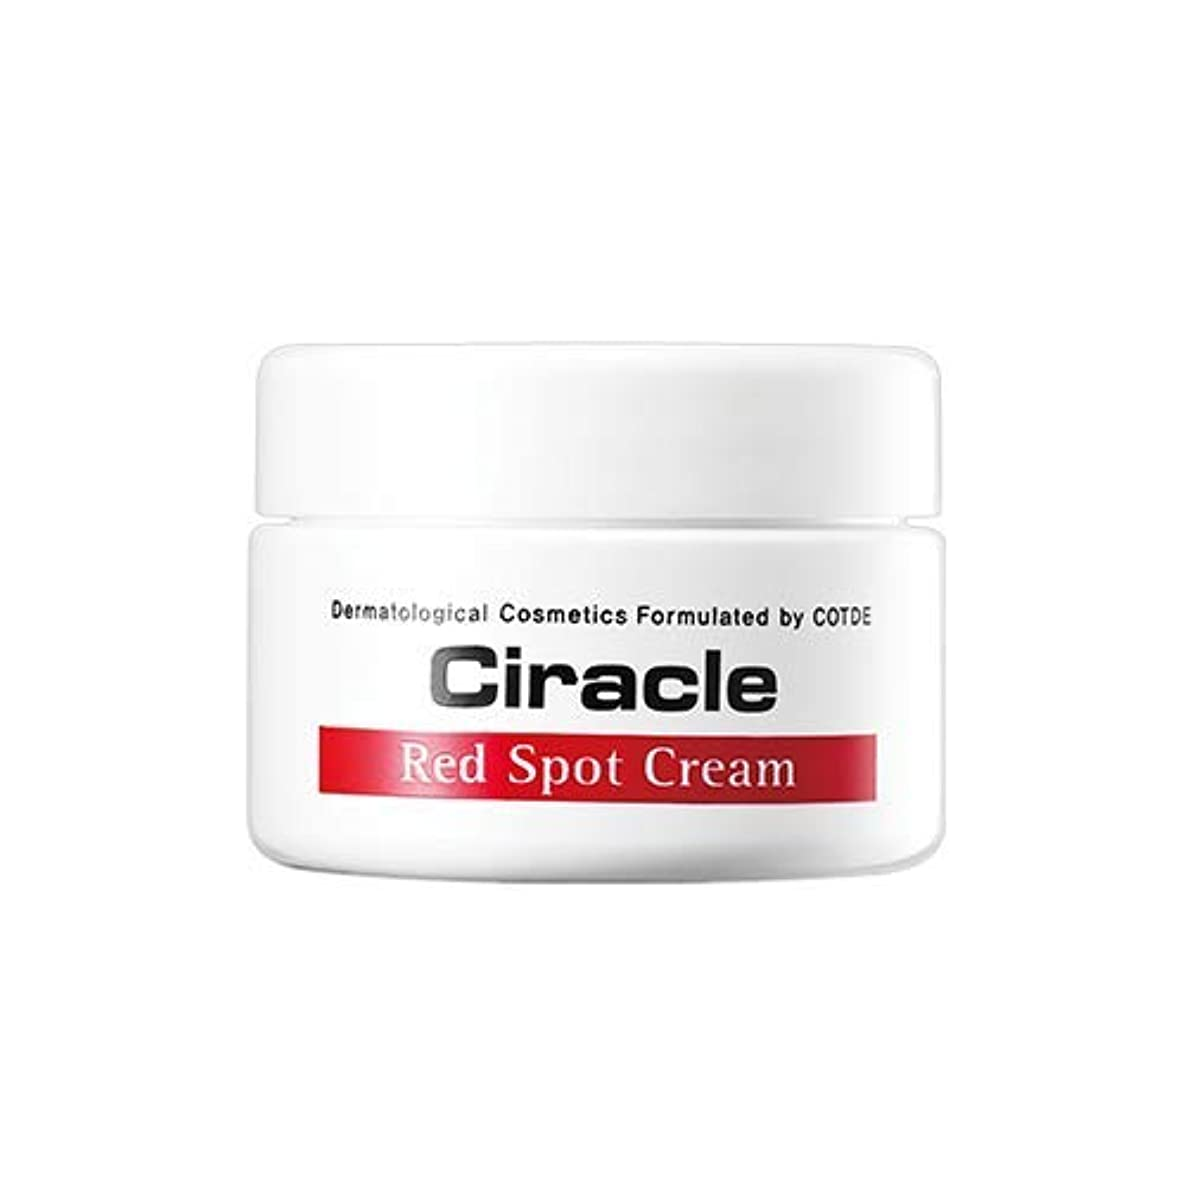 薄汚いどちらか吸収Ciracle Red Spot Cream 30ml Trouble Skin Beauty Product by Skin Product [並行輸入品]